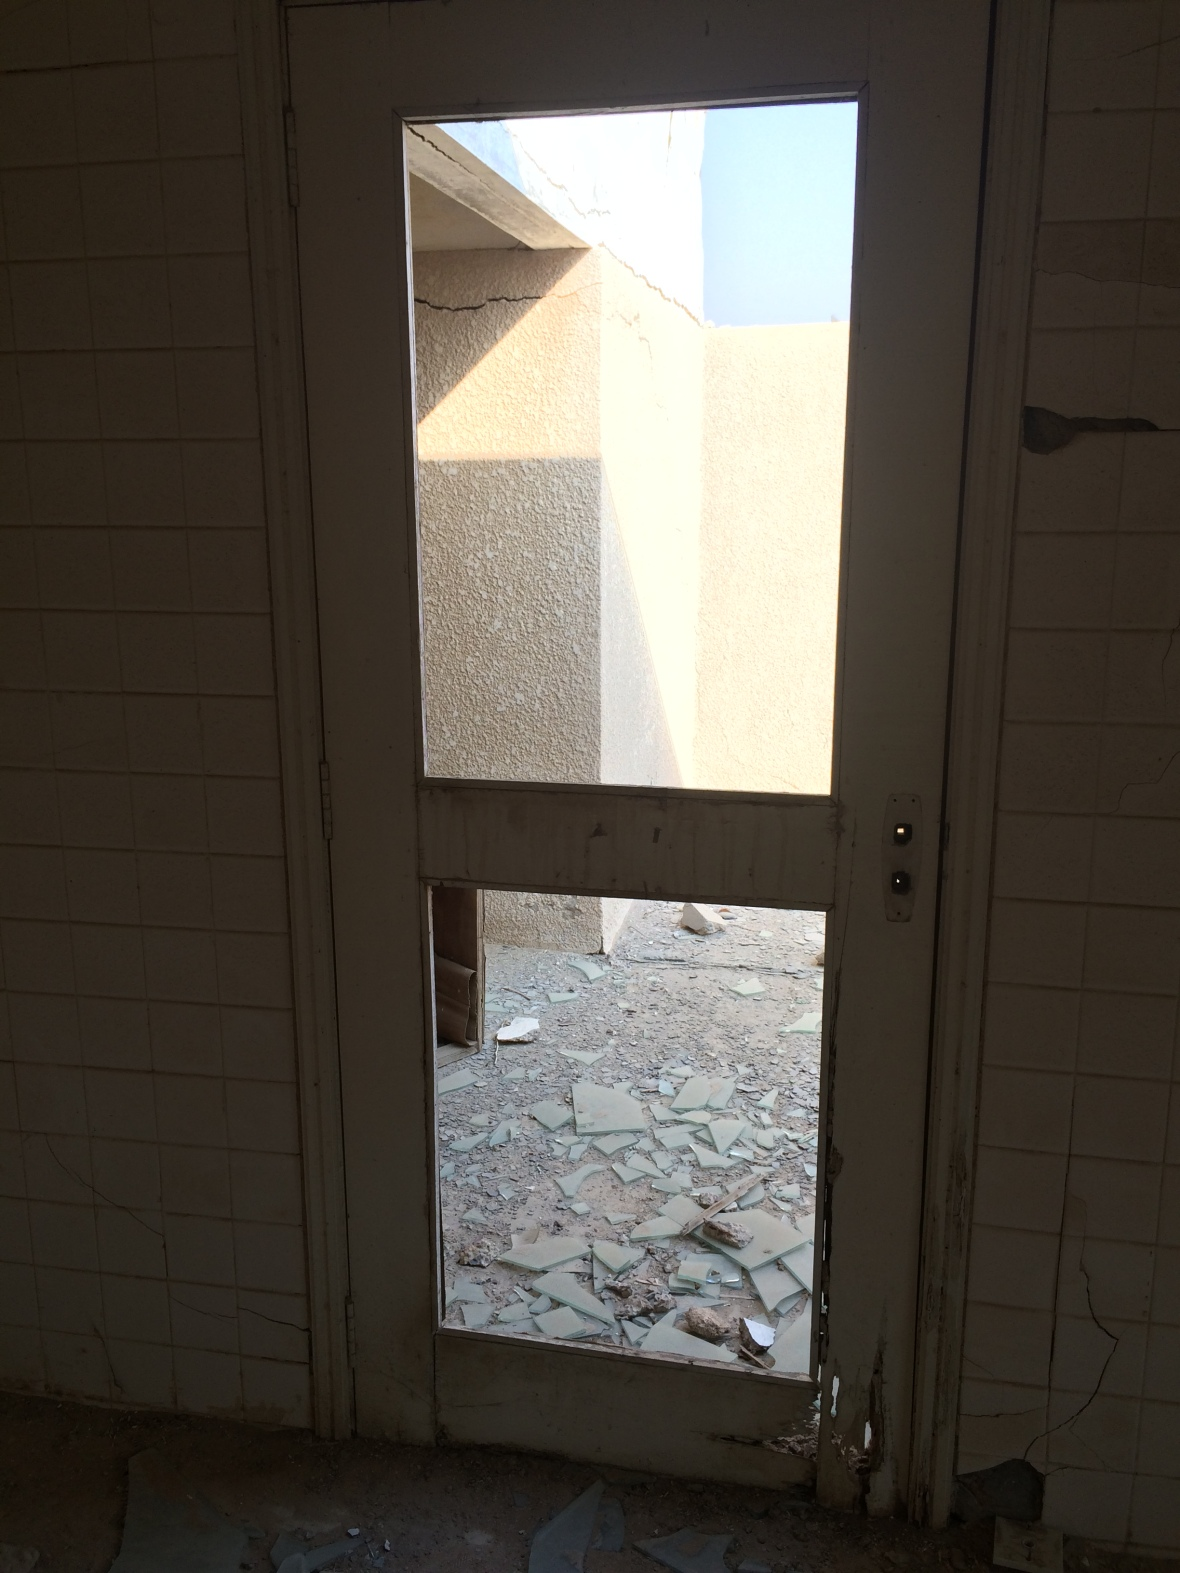 Shattered Glass Through A Broken Door, Al Jazirat Al Hamra, Ras Al Khaimah, UAE